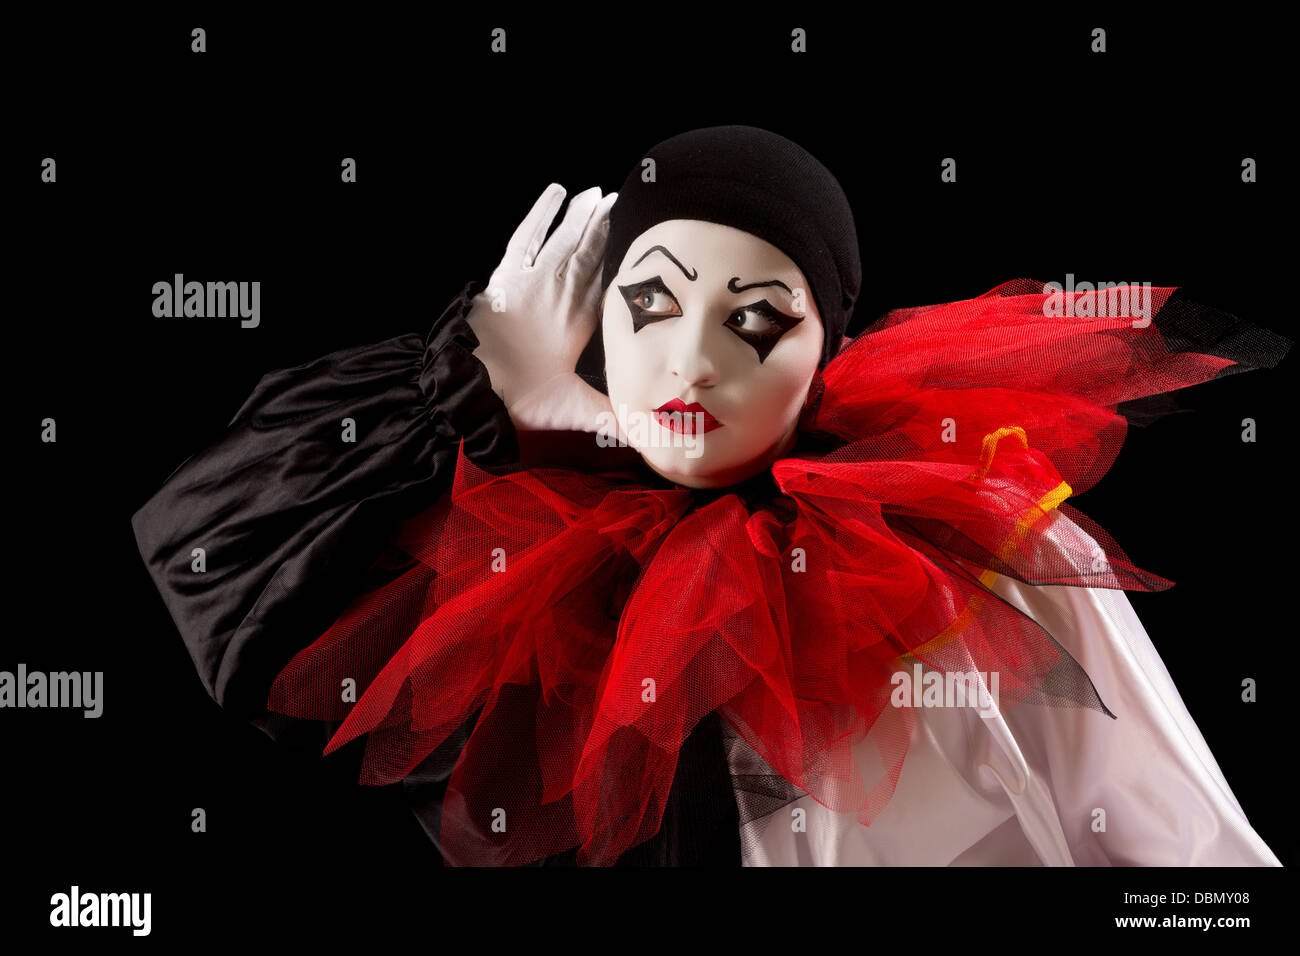 Mime Pierrot actor holding her hands as in listening - Stock Image